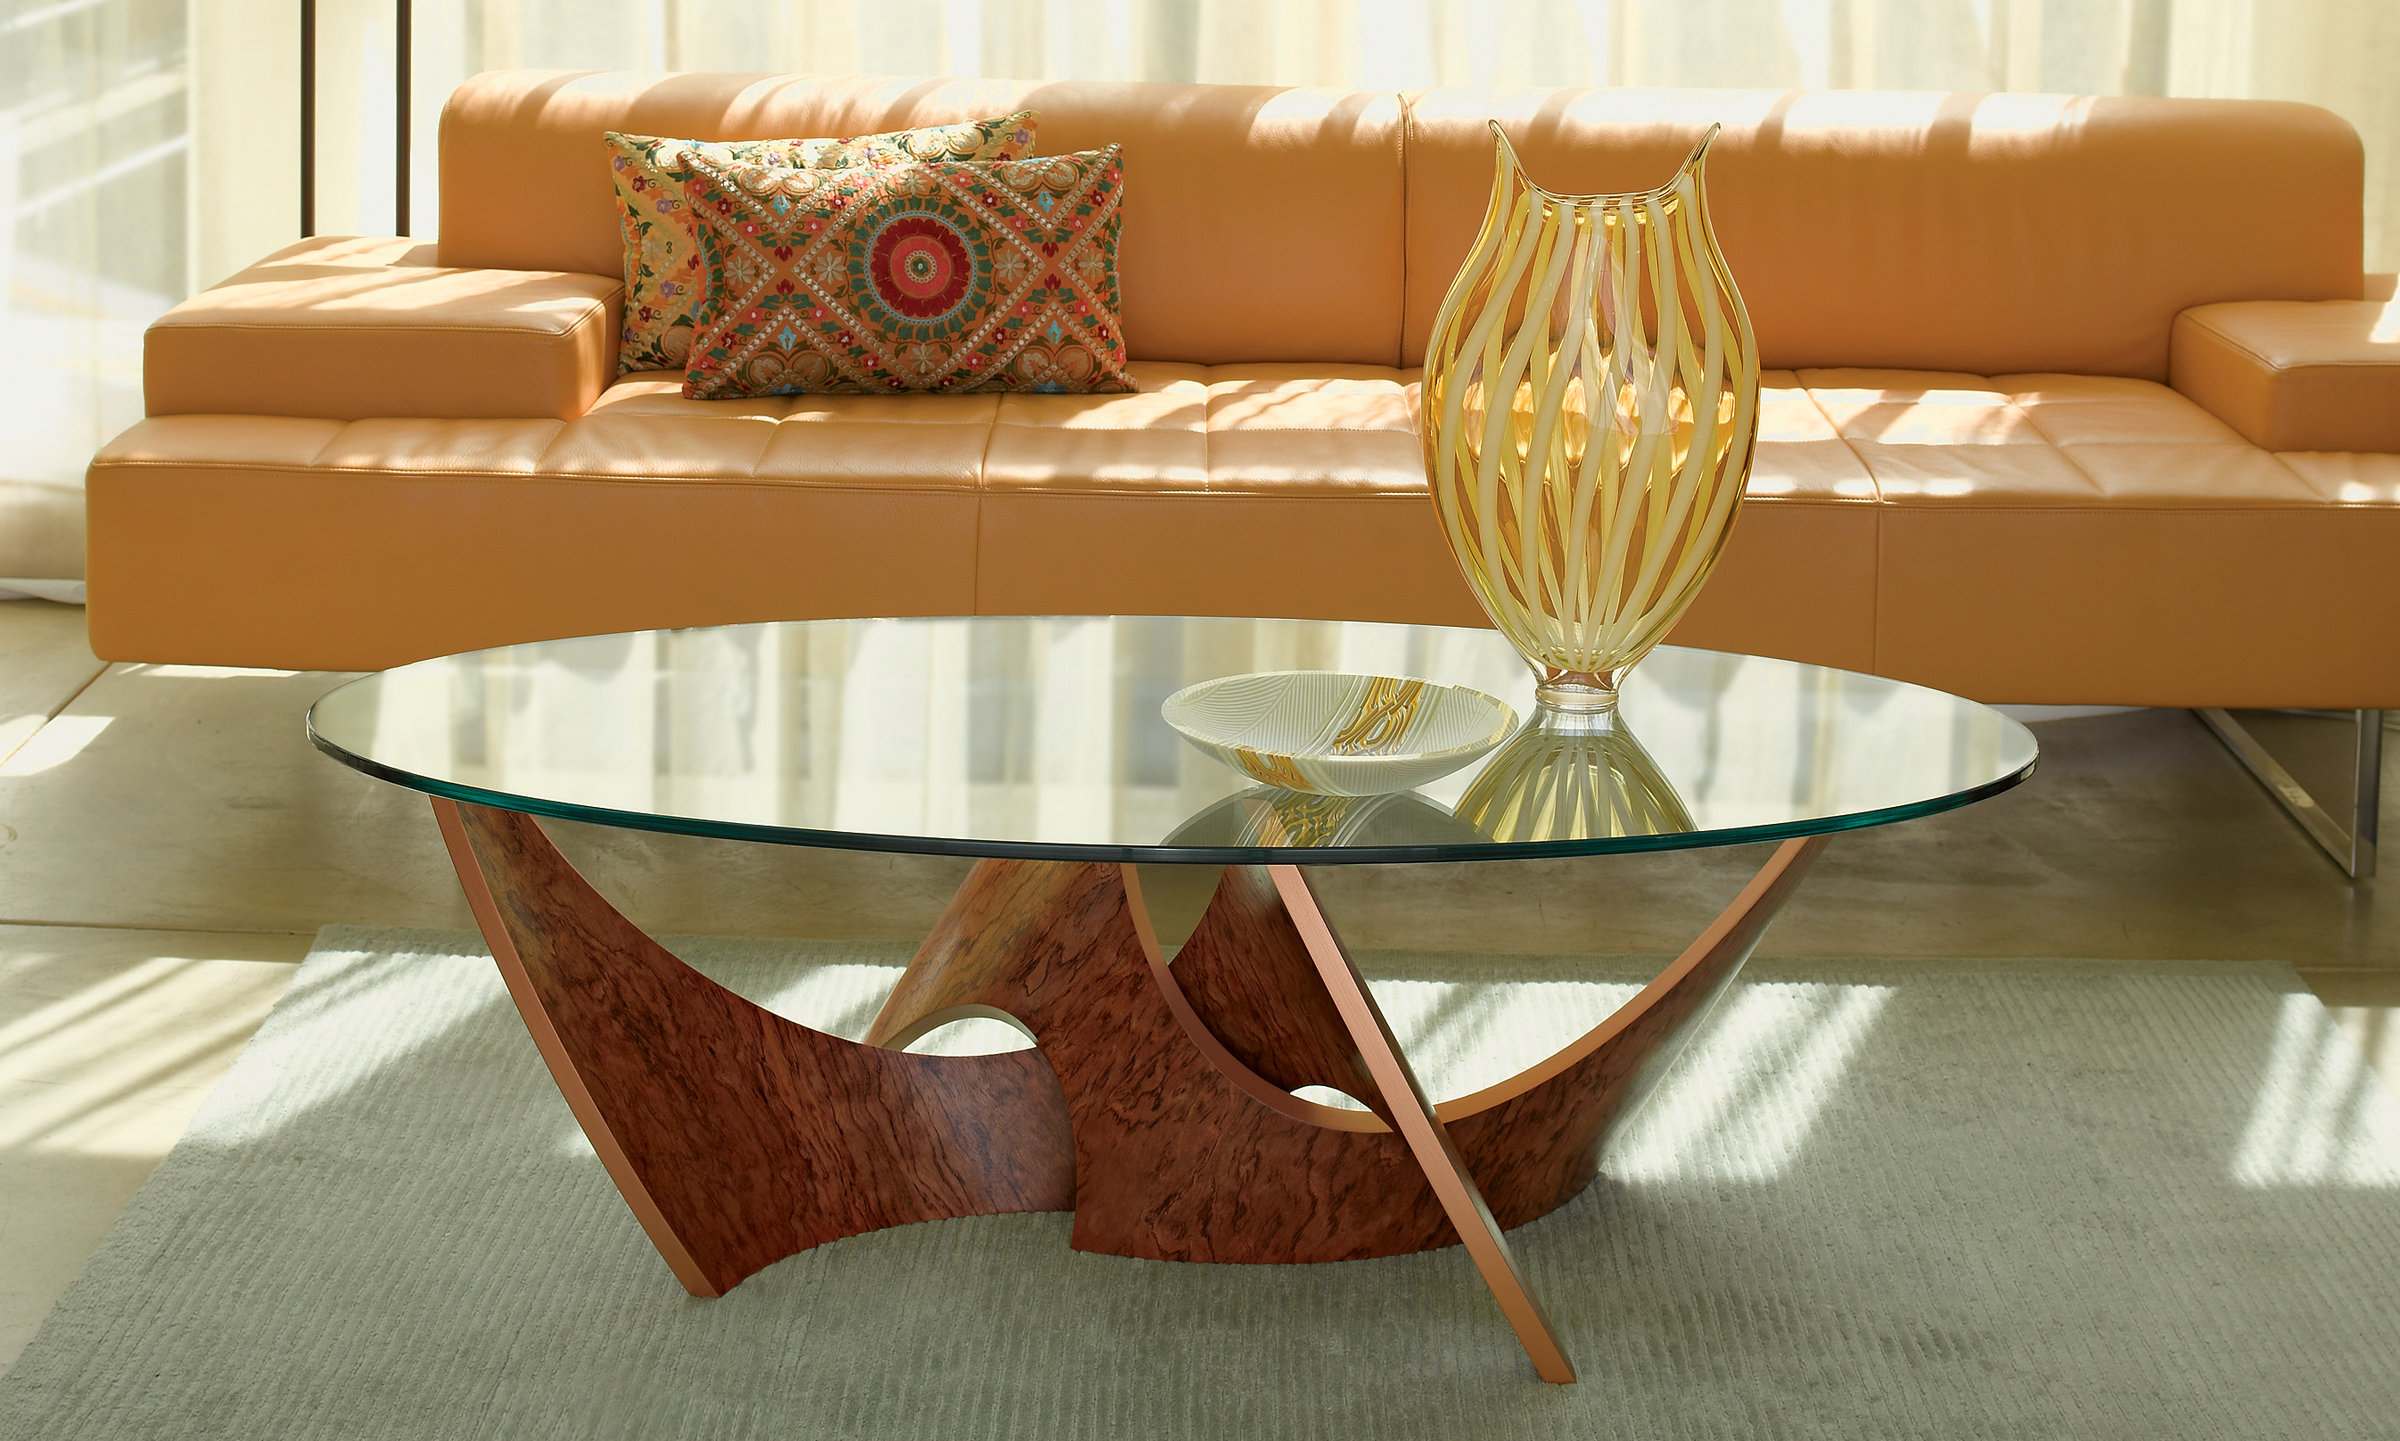 Intertwined Coffee Table by Blaise Gaston (Wood Coffee